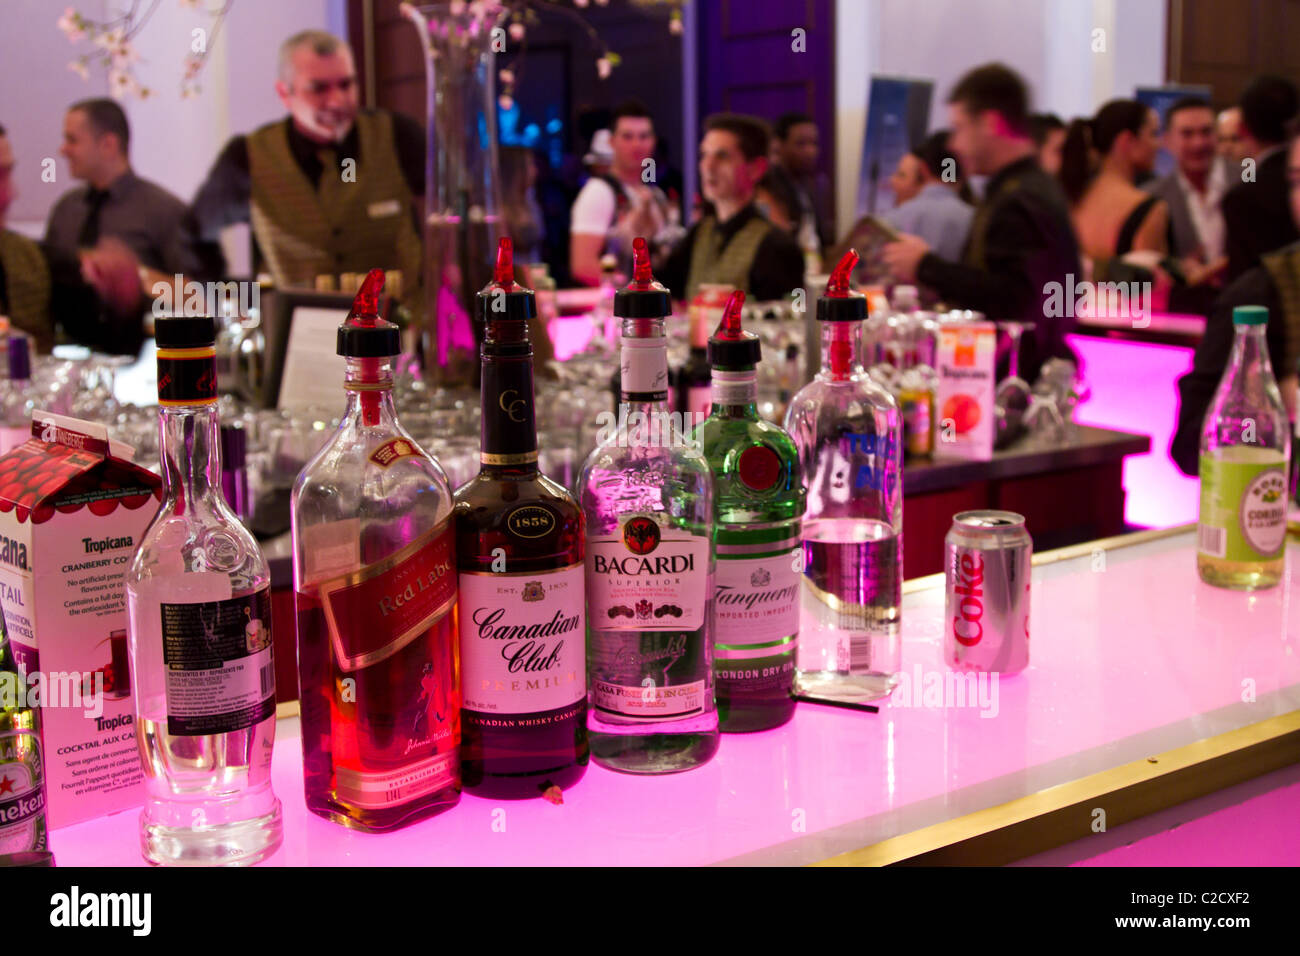 booze stockfotos booze bilder alamy. Black Bedroom Furniture Sets. Home Design Ideas